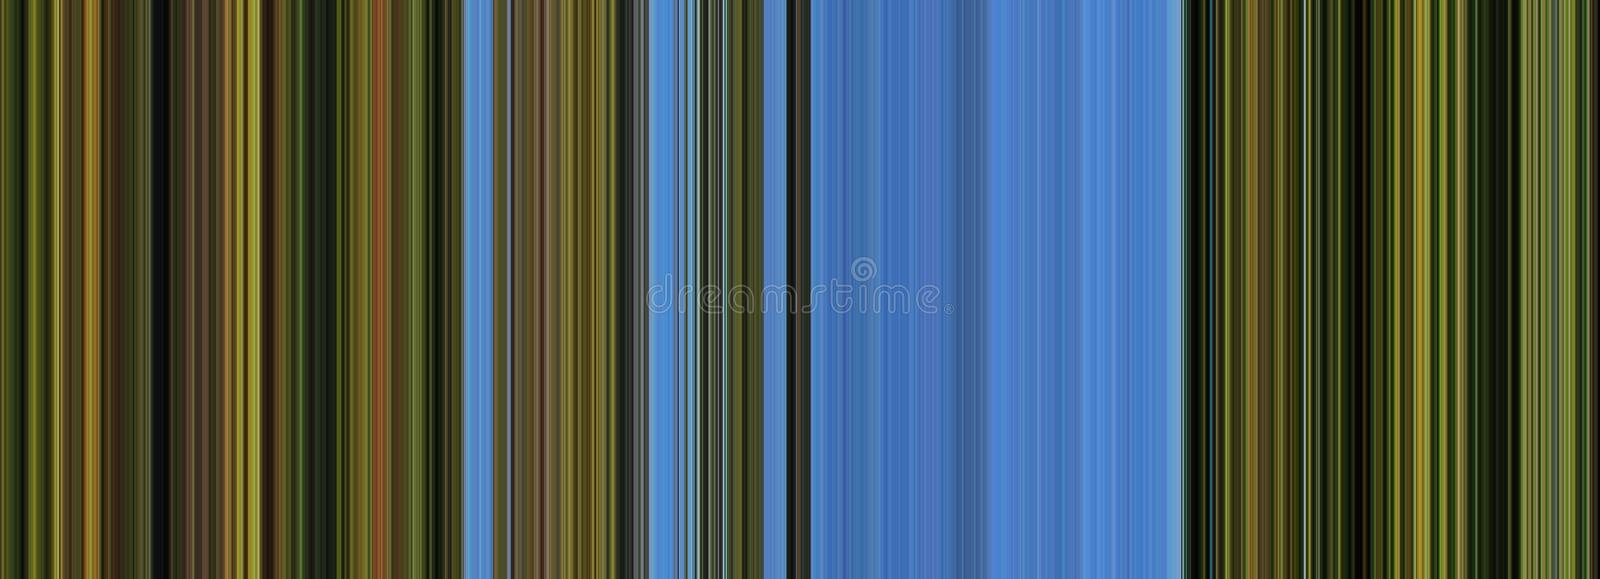 Spectrum Background stock images